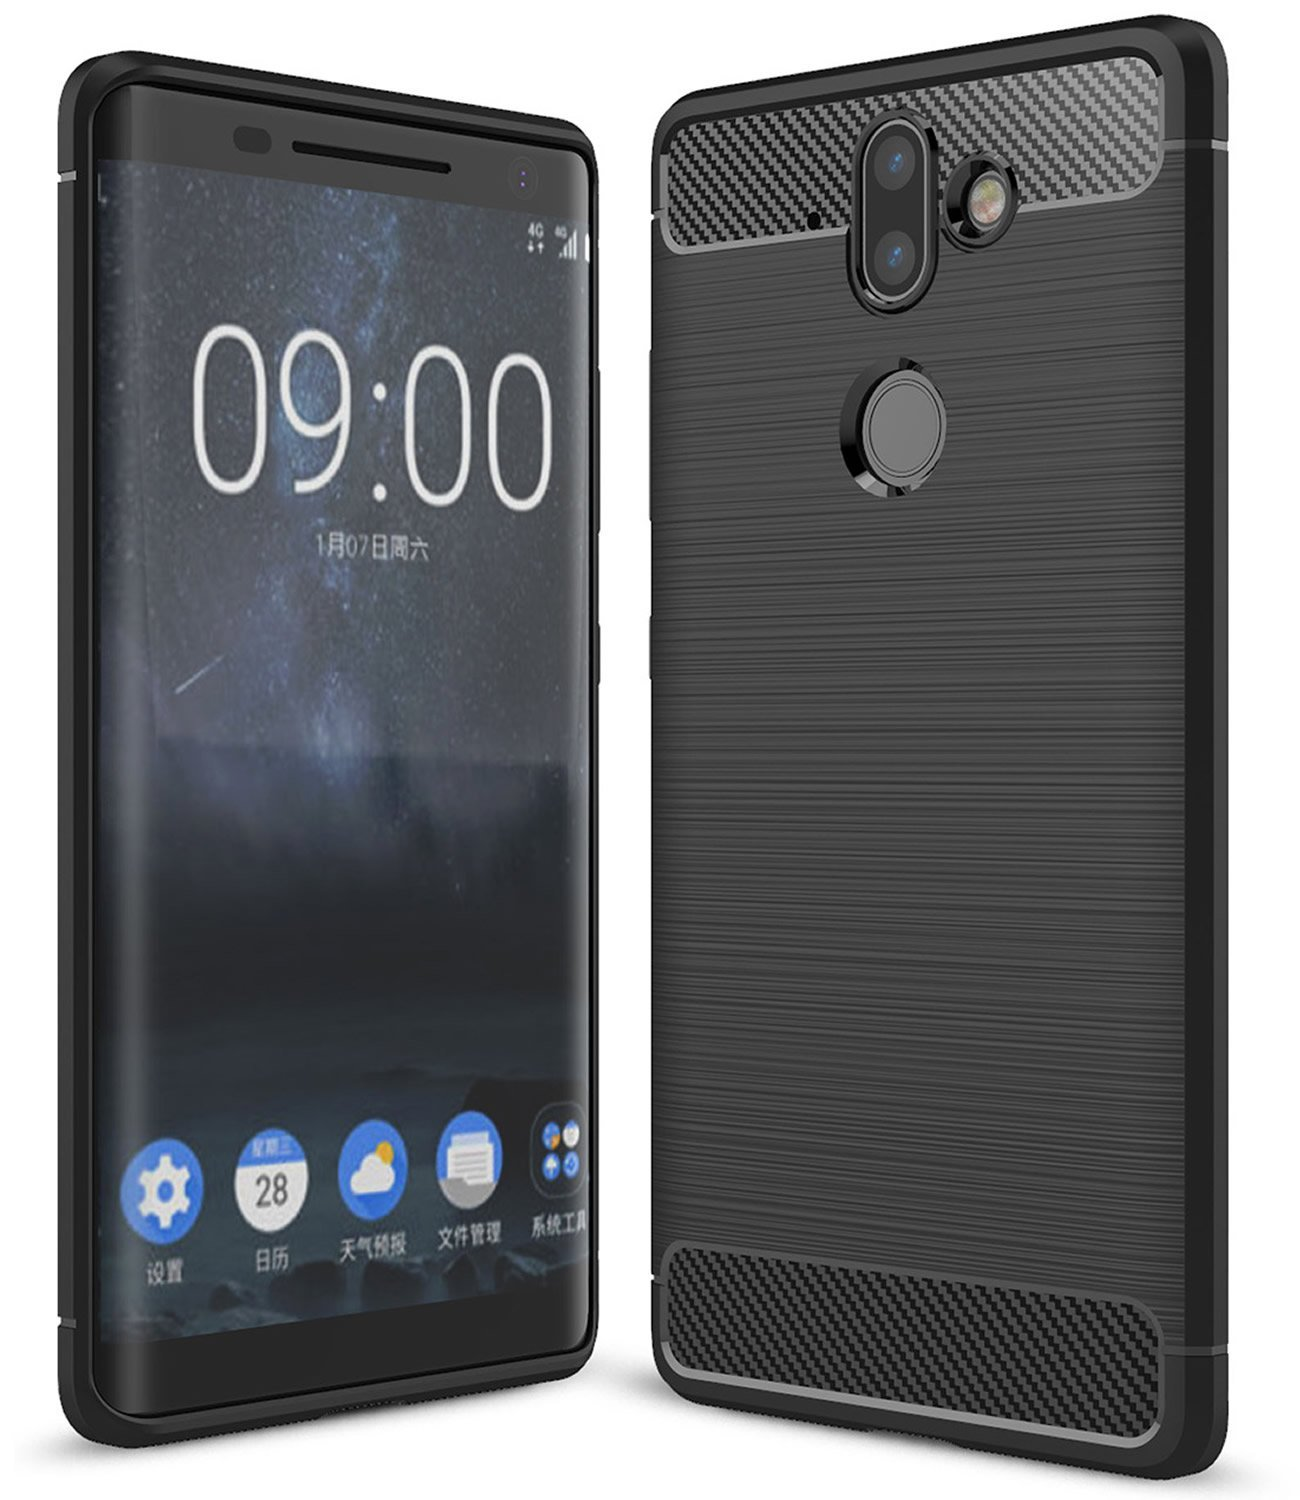 Nokia 9 case render shows 18:9 Display with curved edges & Dual Cameras 1